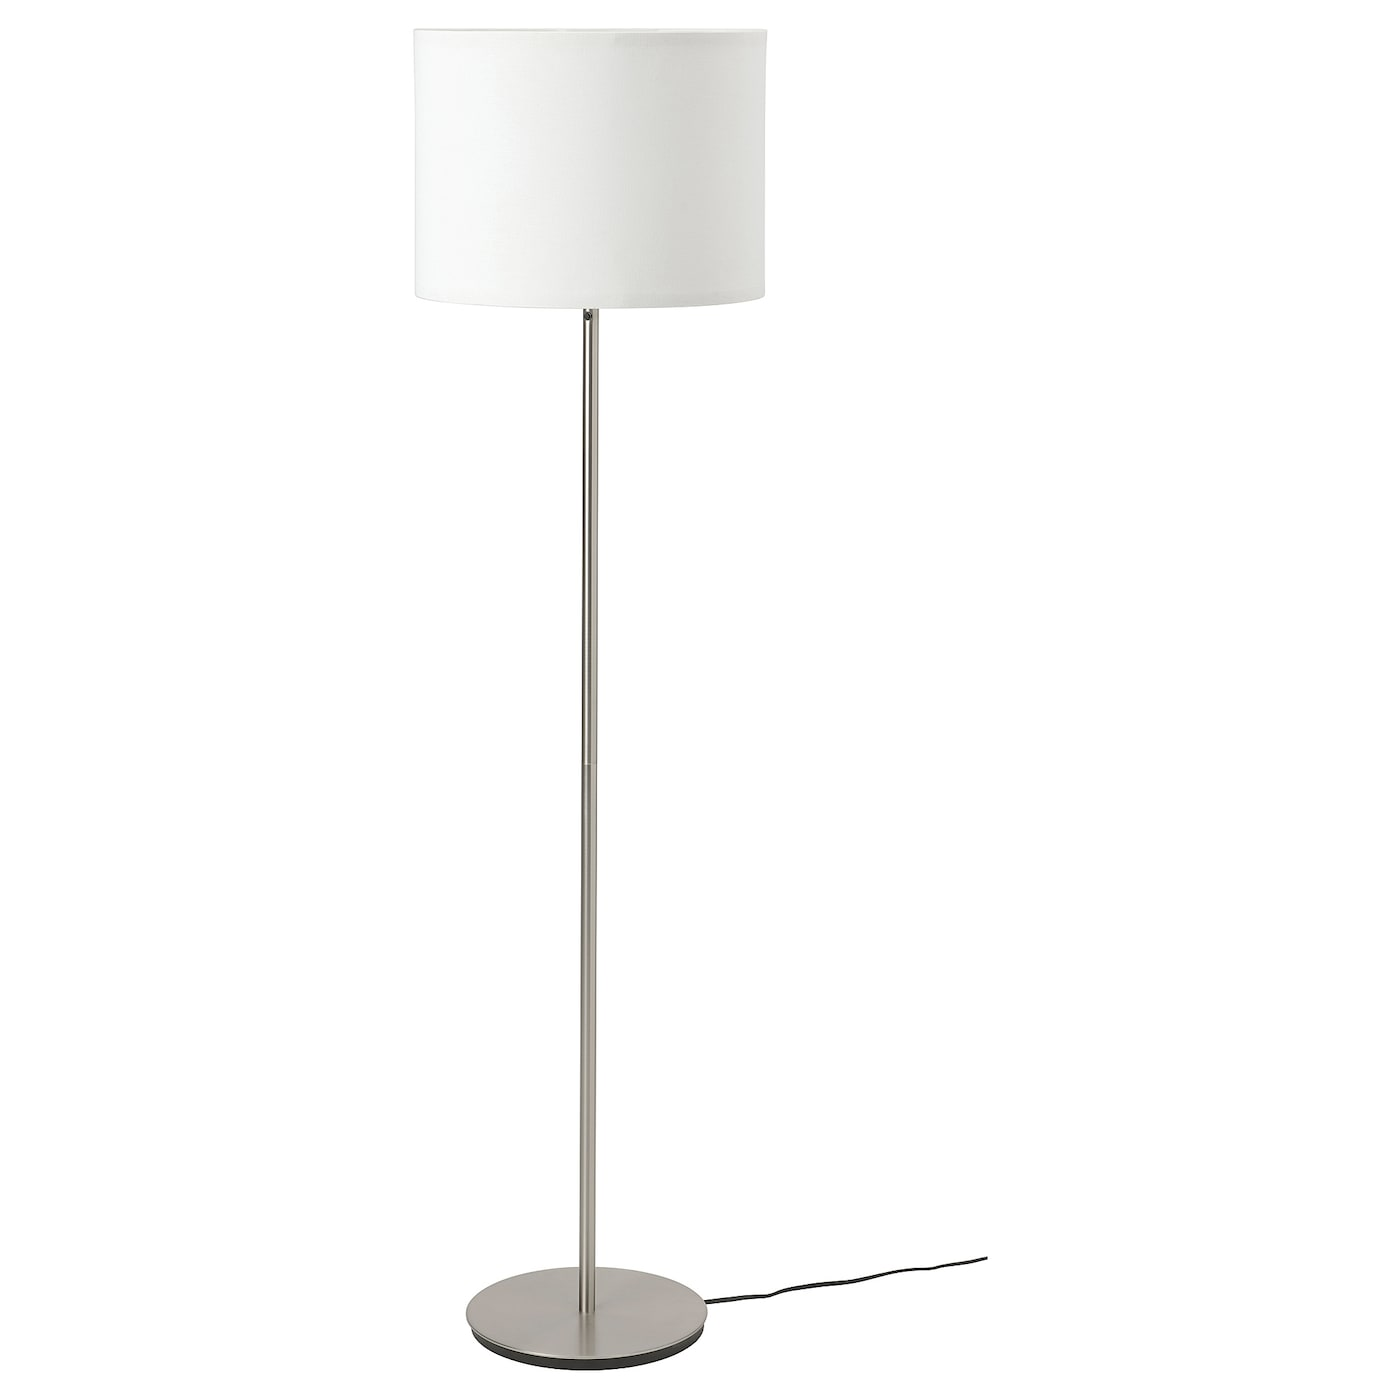 Floor Lamps Buy Standard Lamps Online At Affordable Price In India Ikea